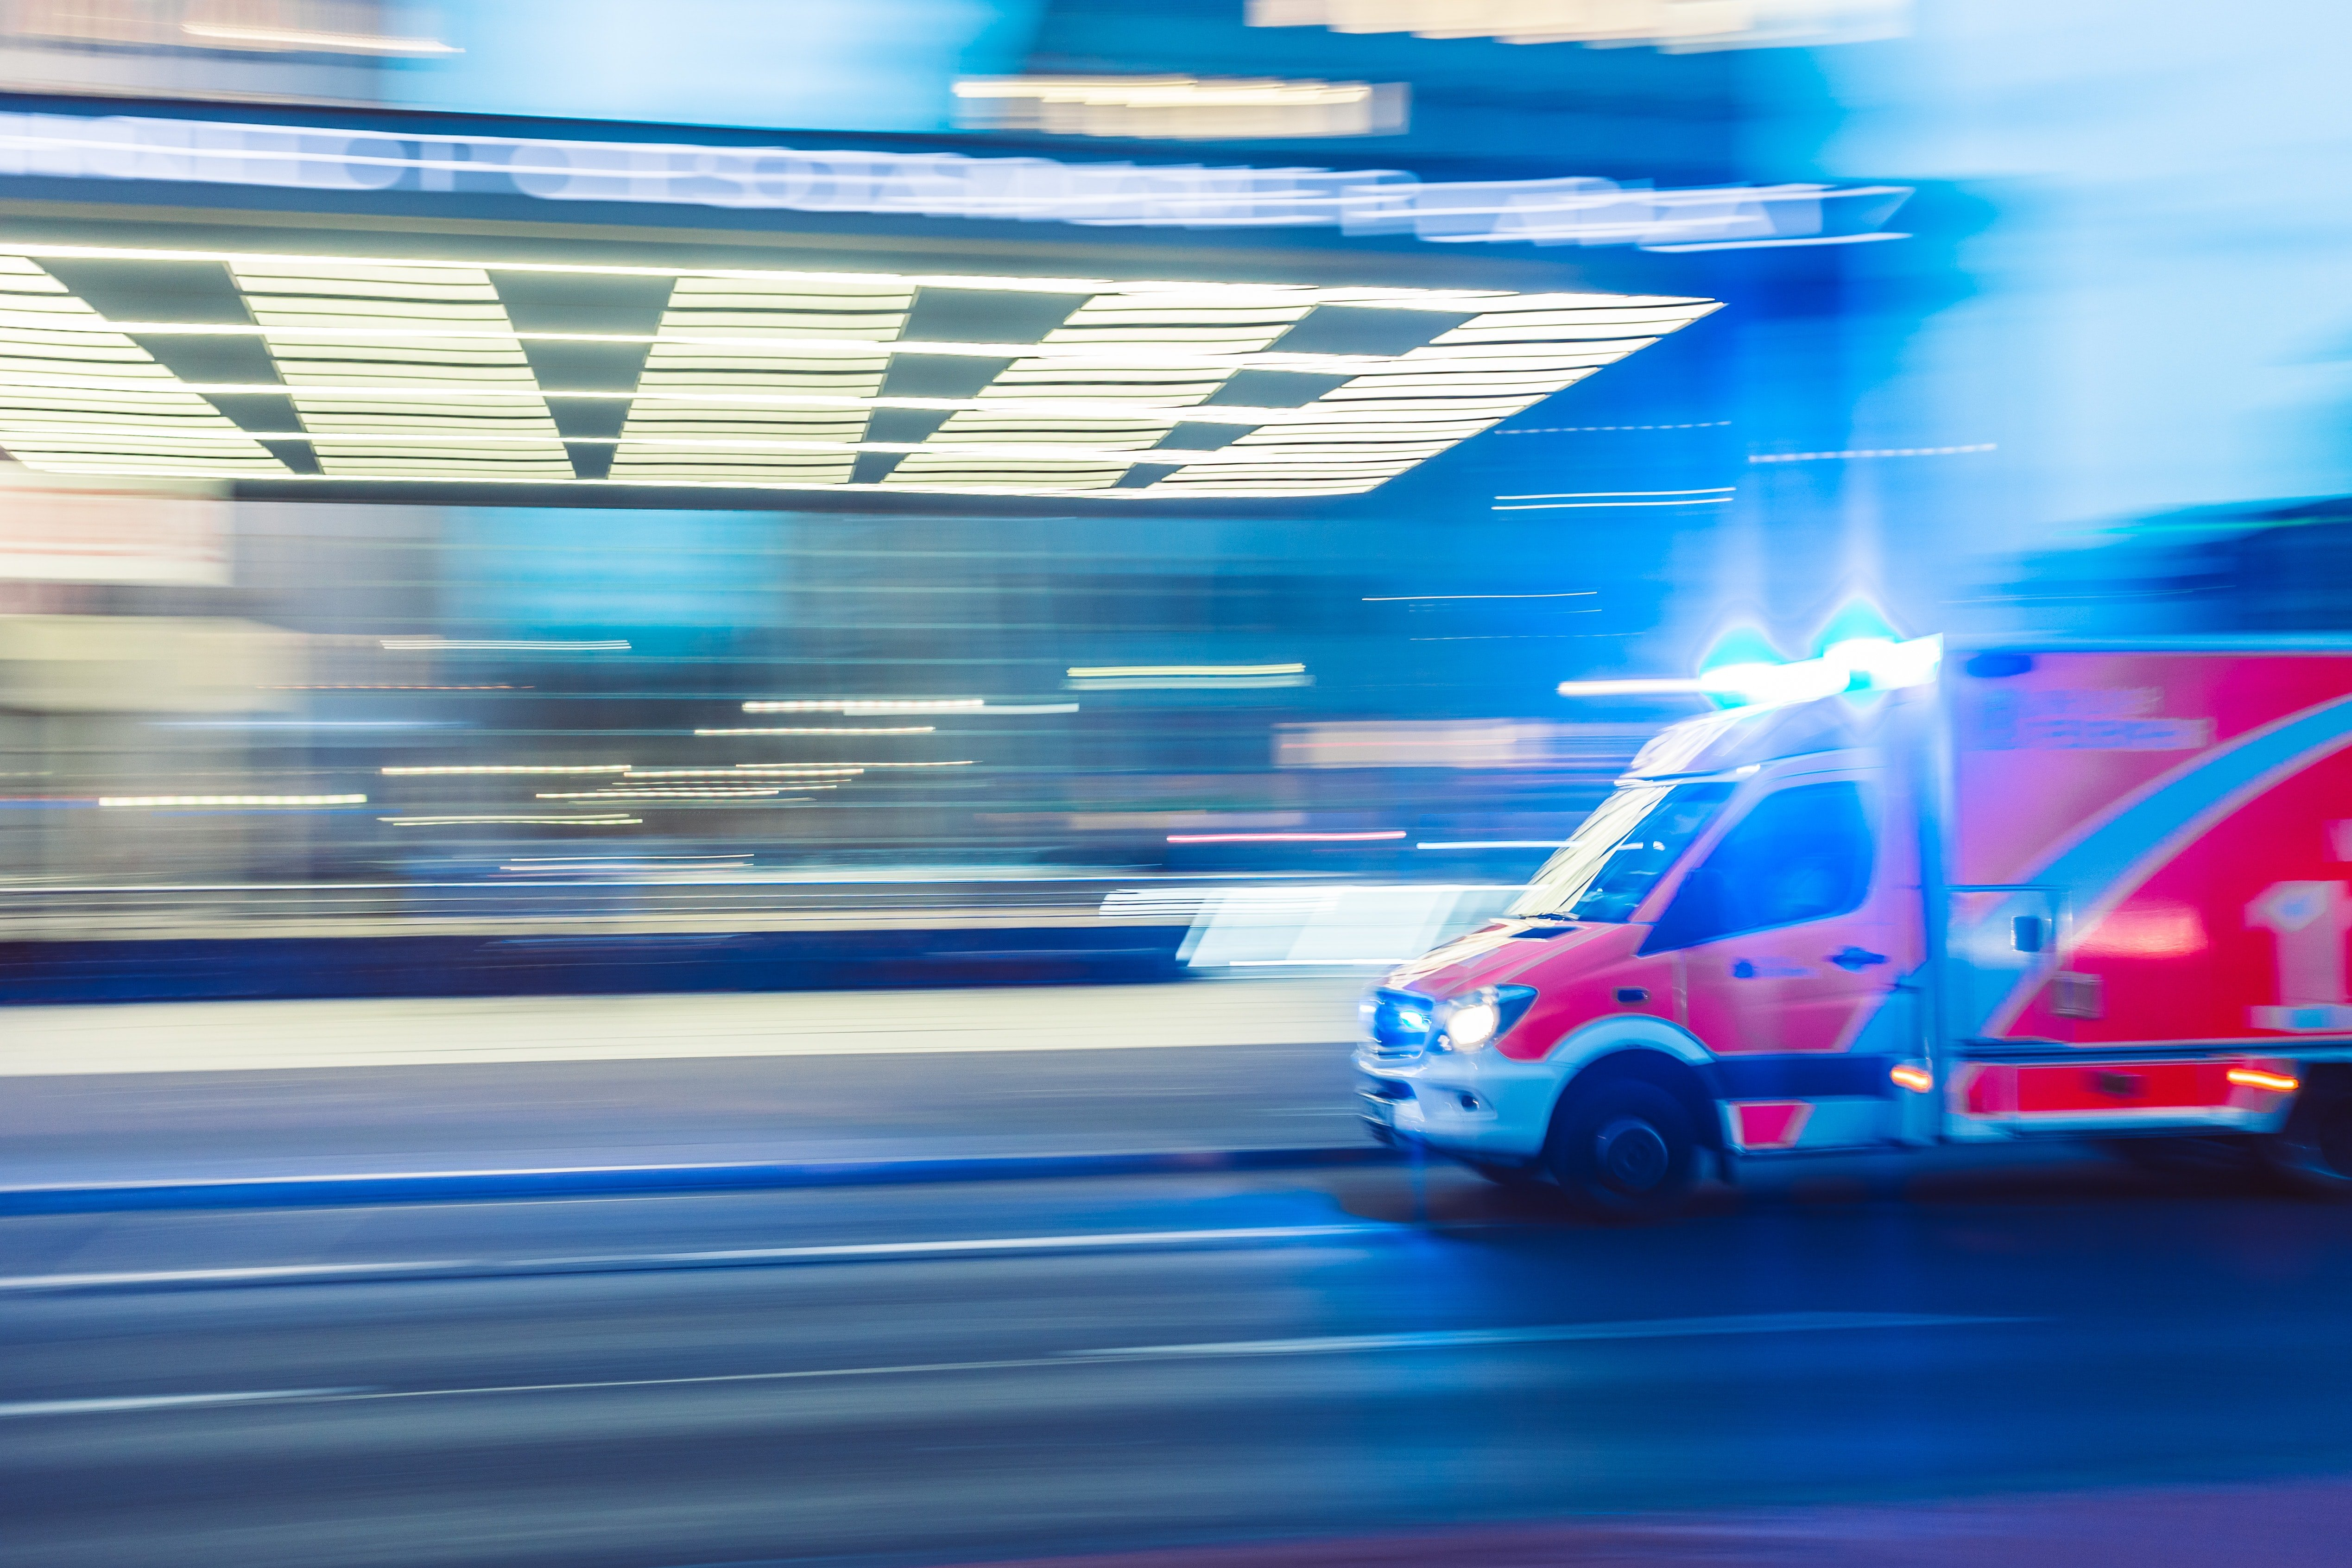 Emergency vehicles approached Ryan's house. | Source: Unsplash